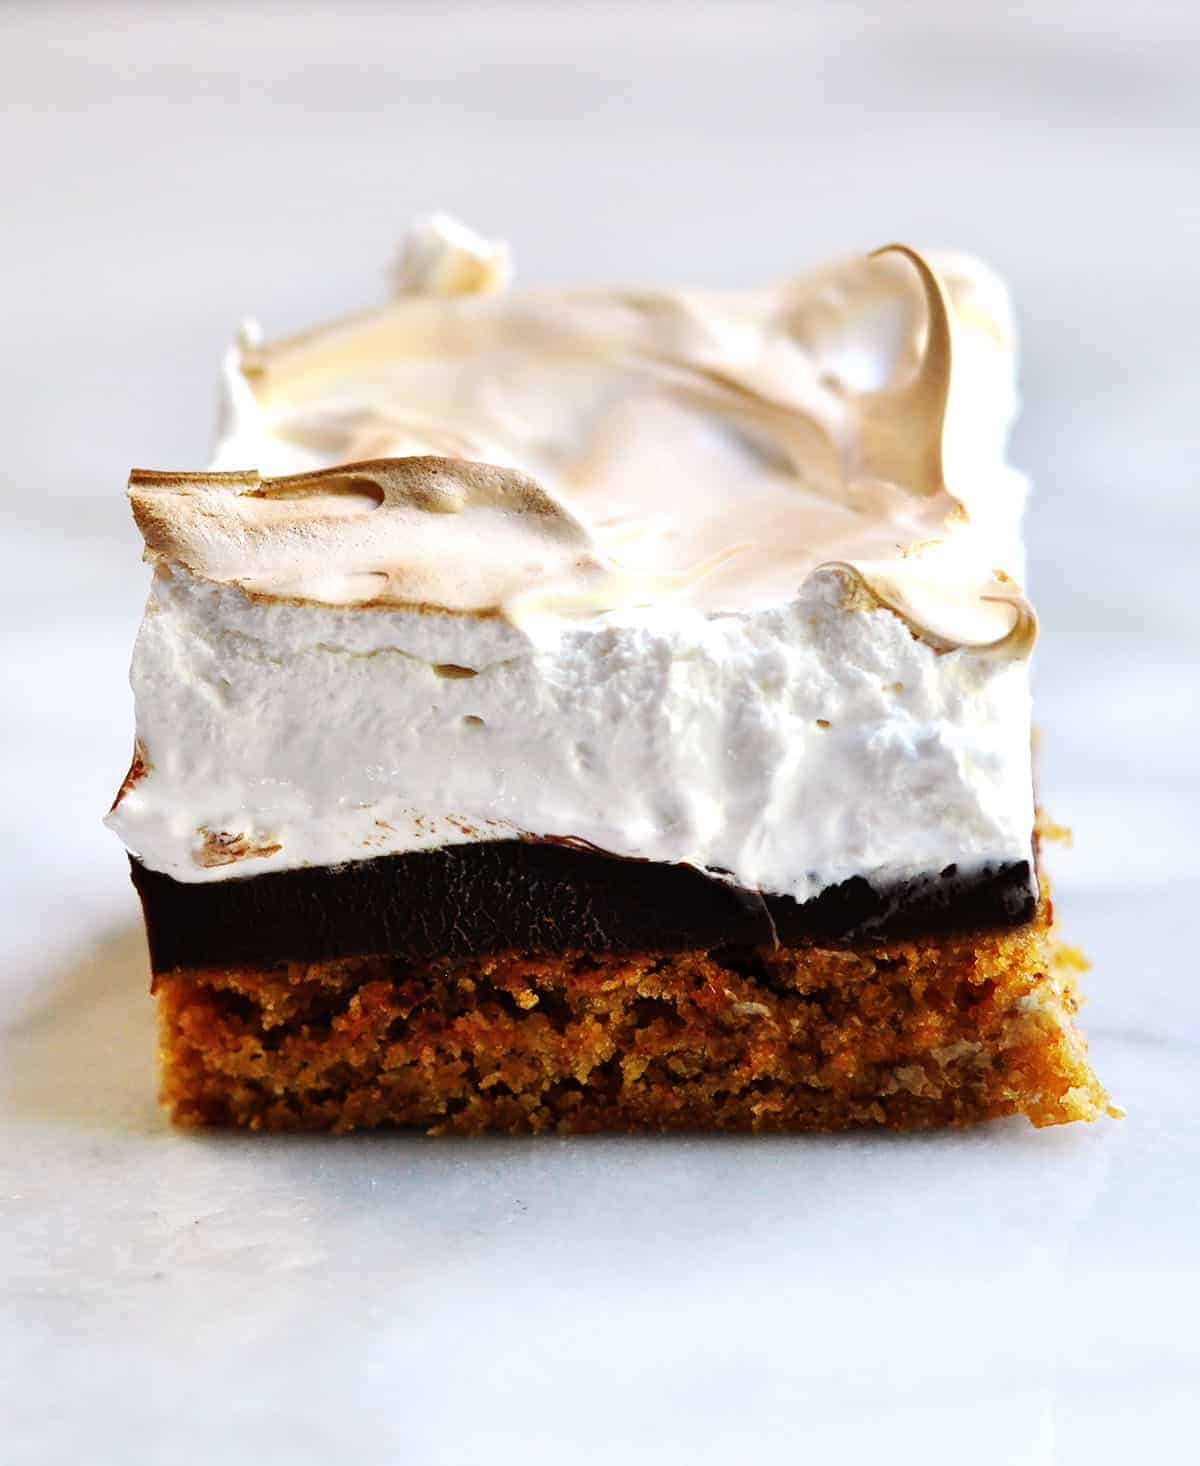 A brownie with a clear graham cracker layer, chocolate layer, and toasted marshmallow meringue layer sits on a white background.